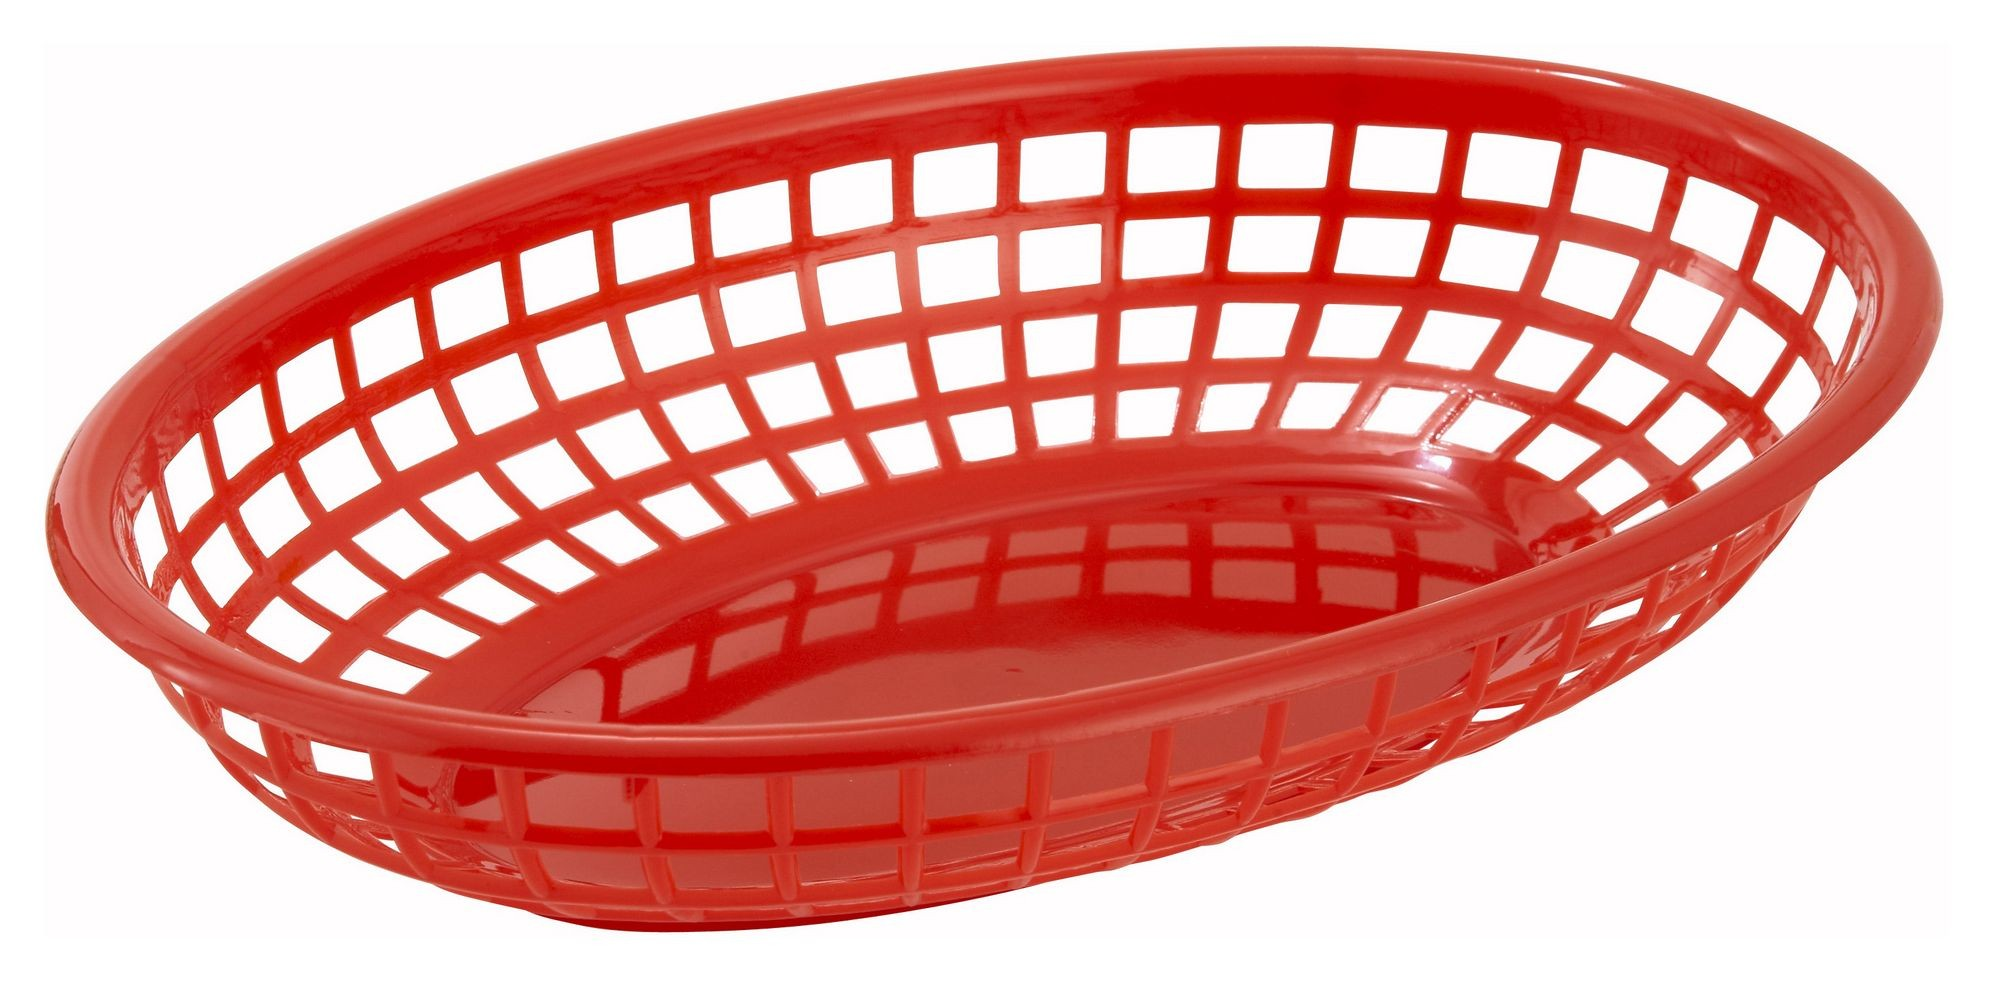 Red Oval Plastic Fast Food Basket - 9-1/2